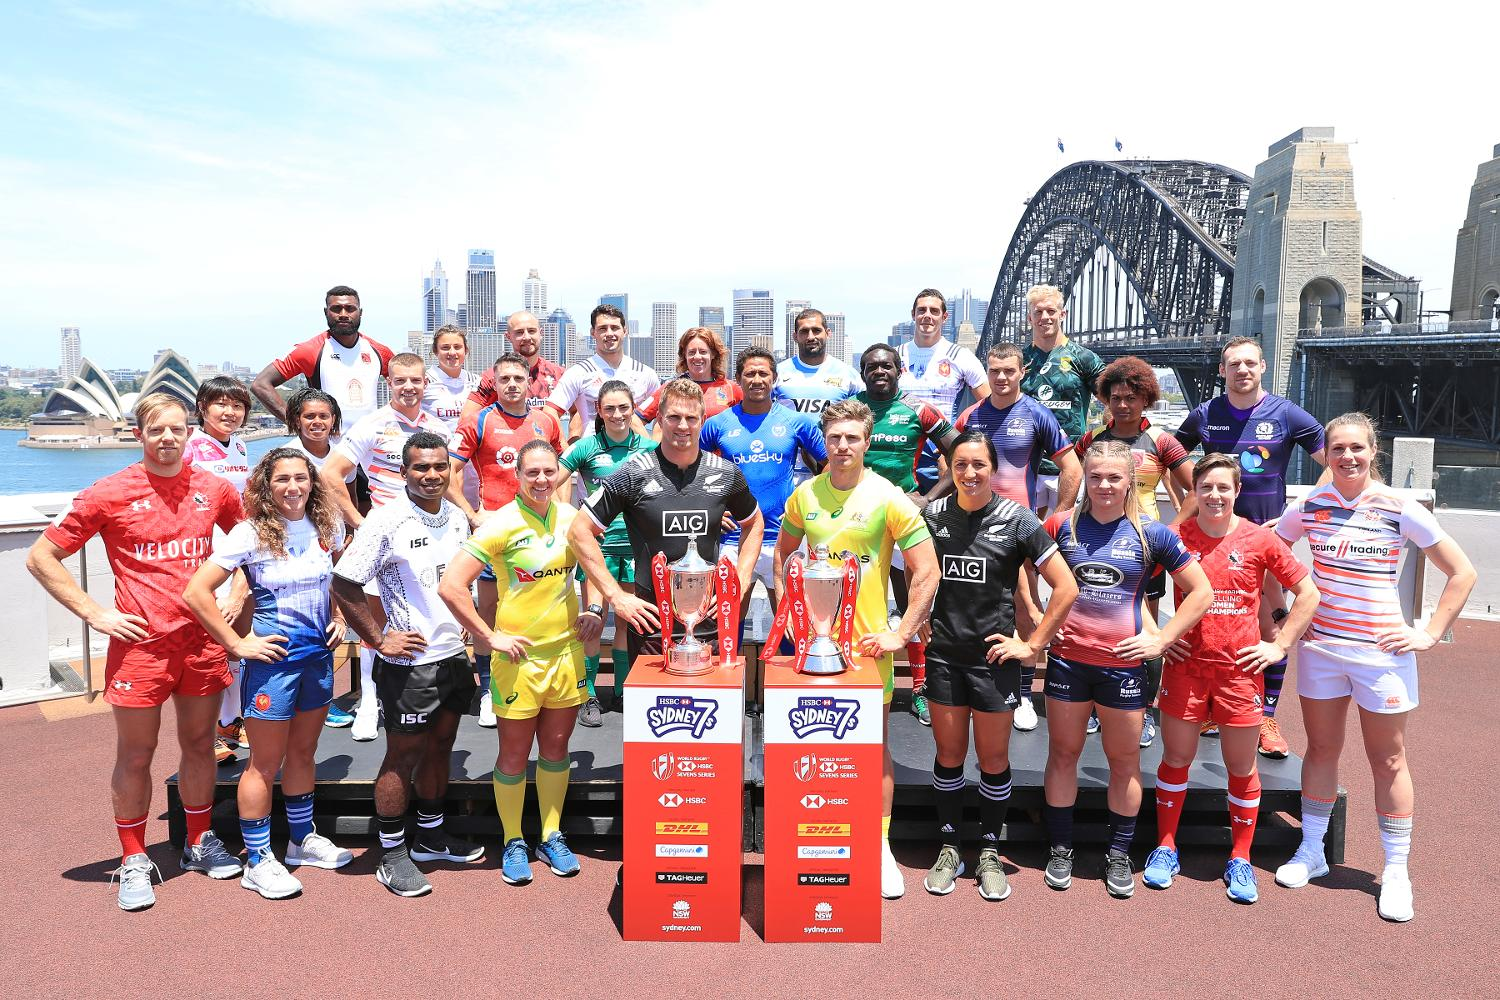 Sydney sevens captain's photo shoot